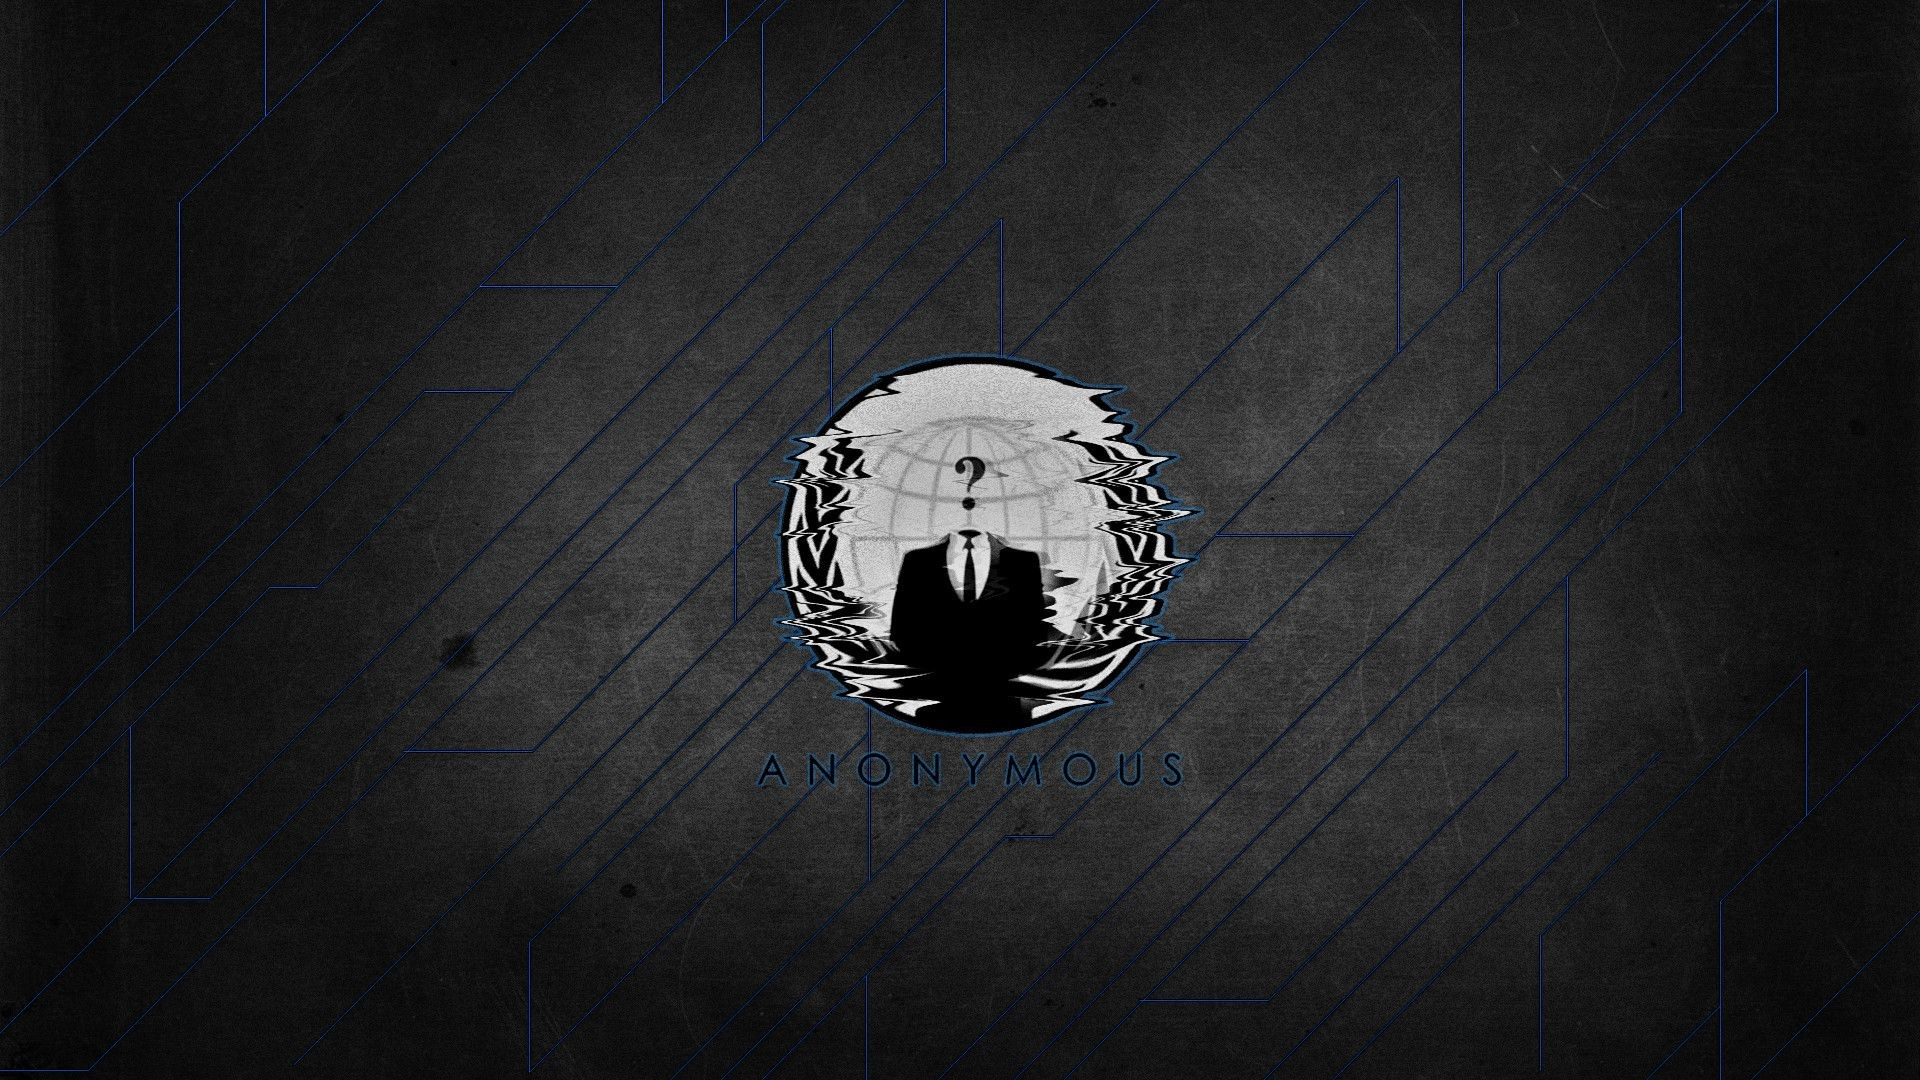 Adorable HDQ Backgrounds of Anonymous HD, px